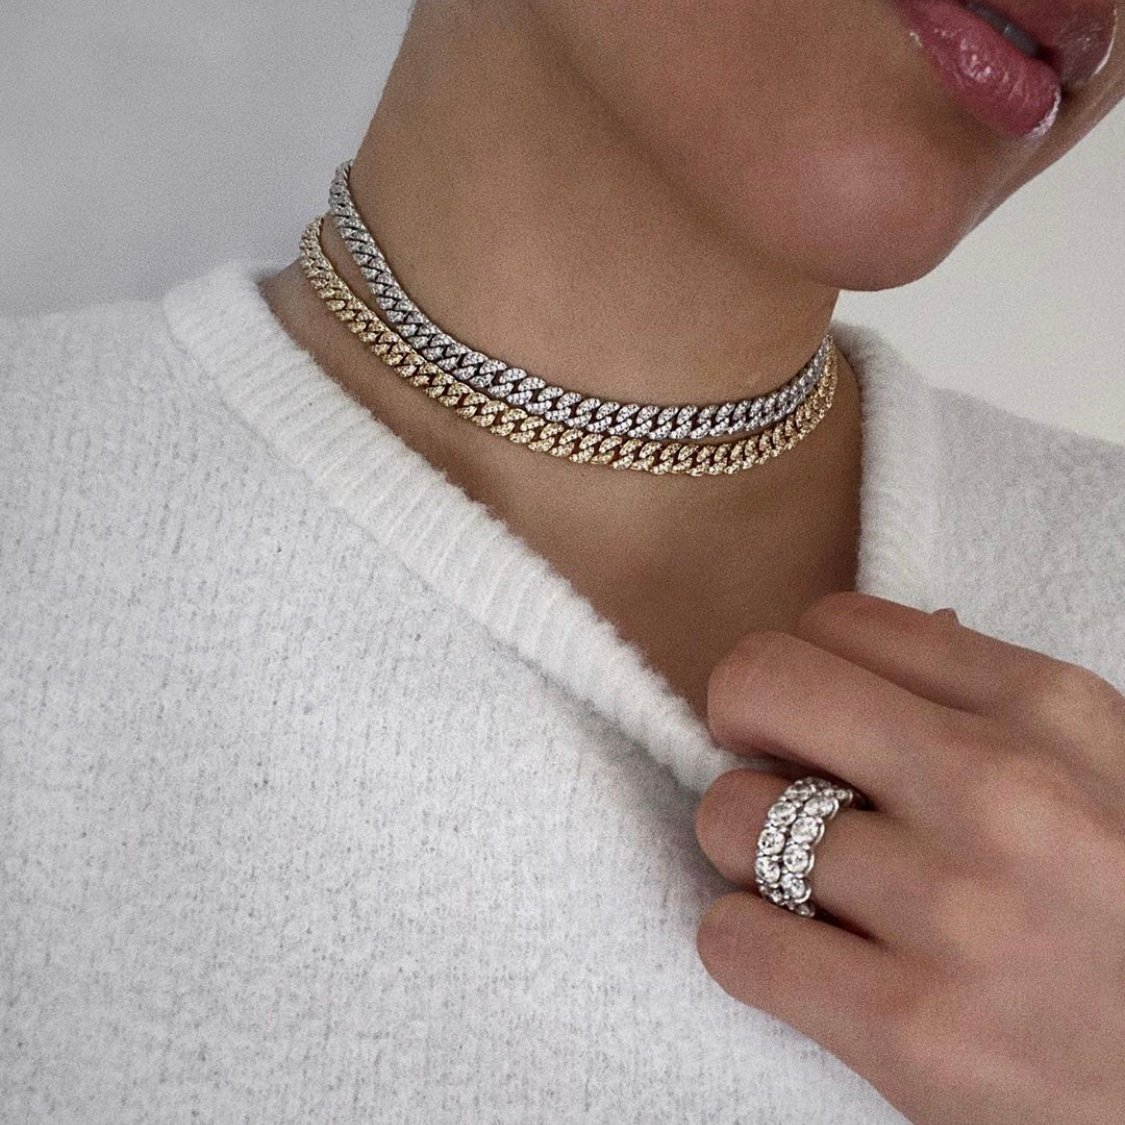 Cuban Choker and ring shown